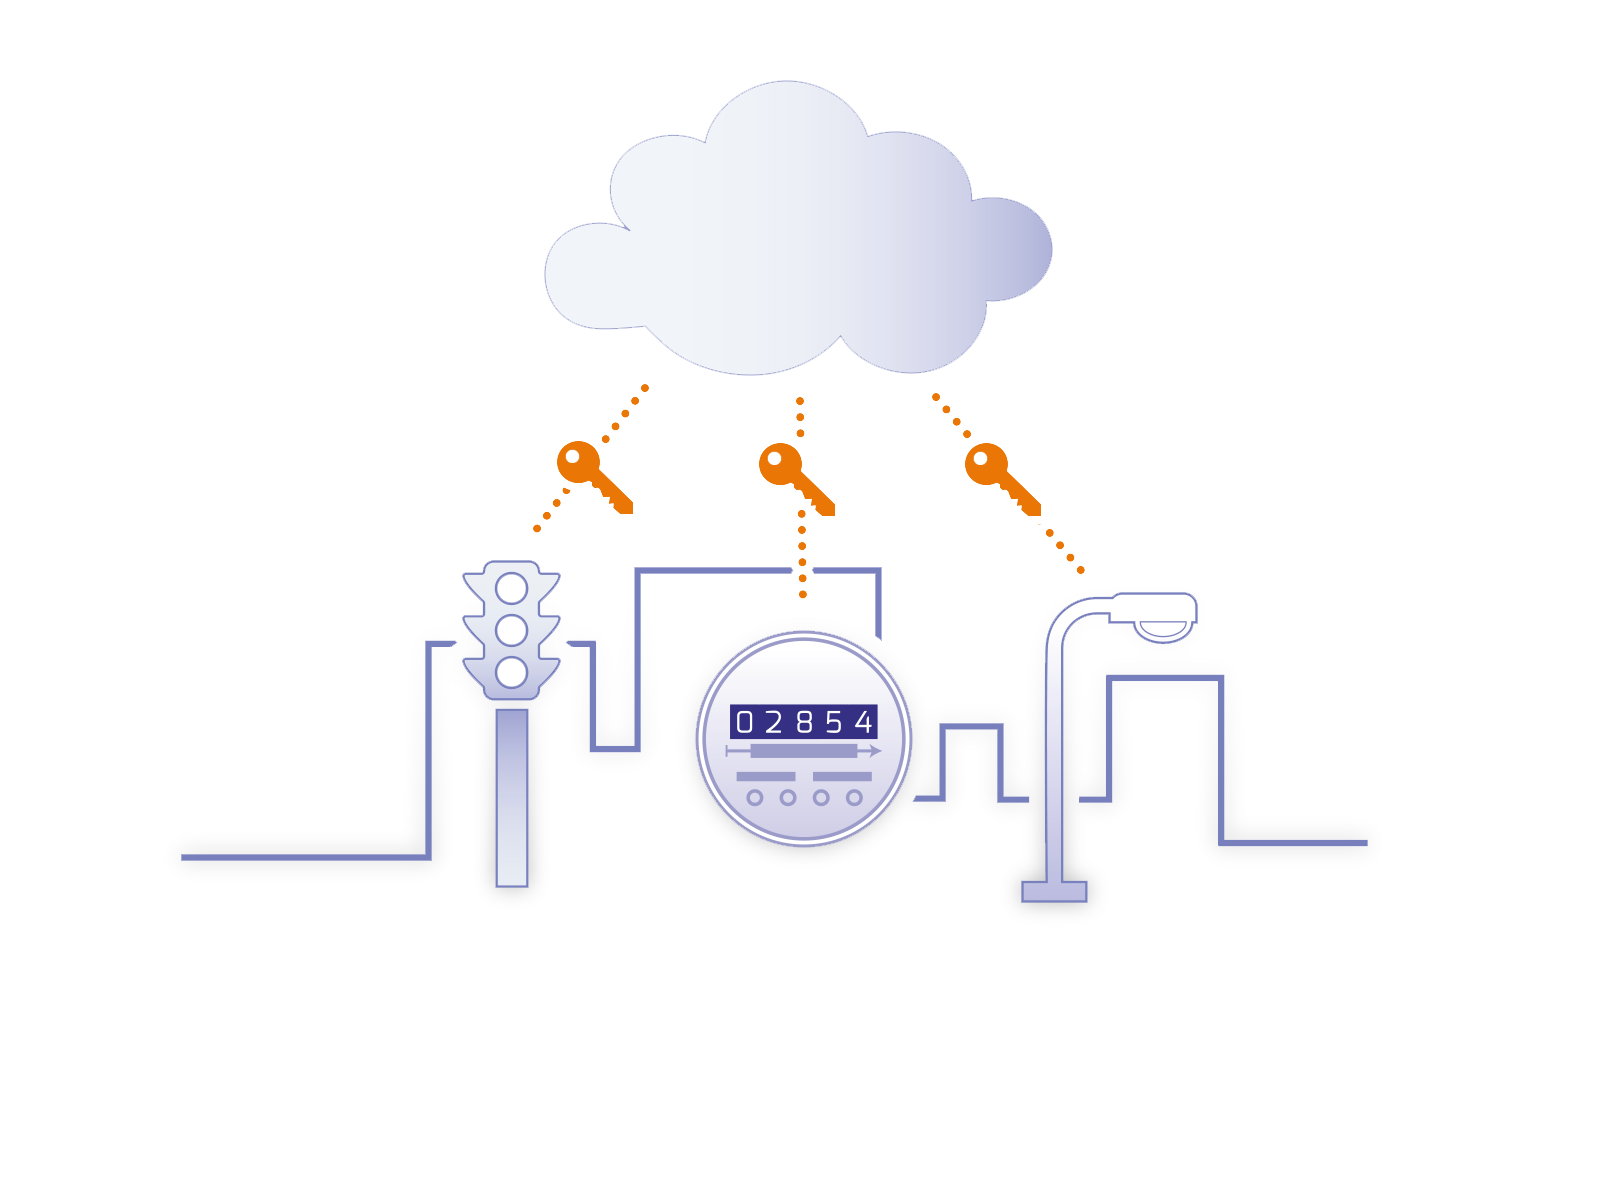 IOT Device Security and Key Management